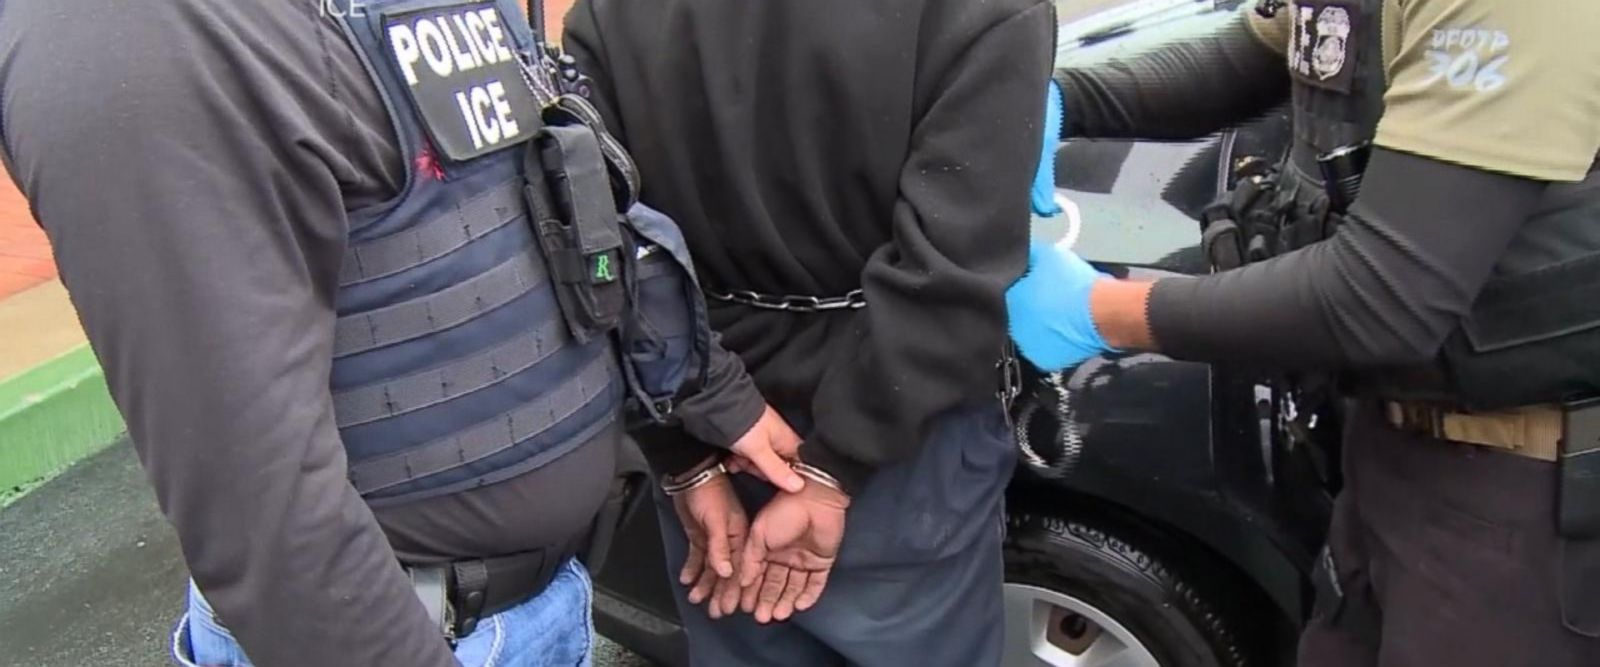 VIDEO: Details released on President Trump's new policy on undocumented immigrants